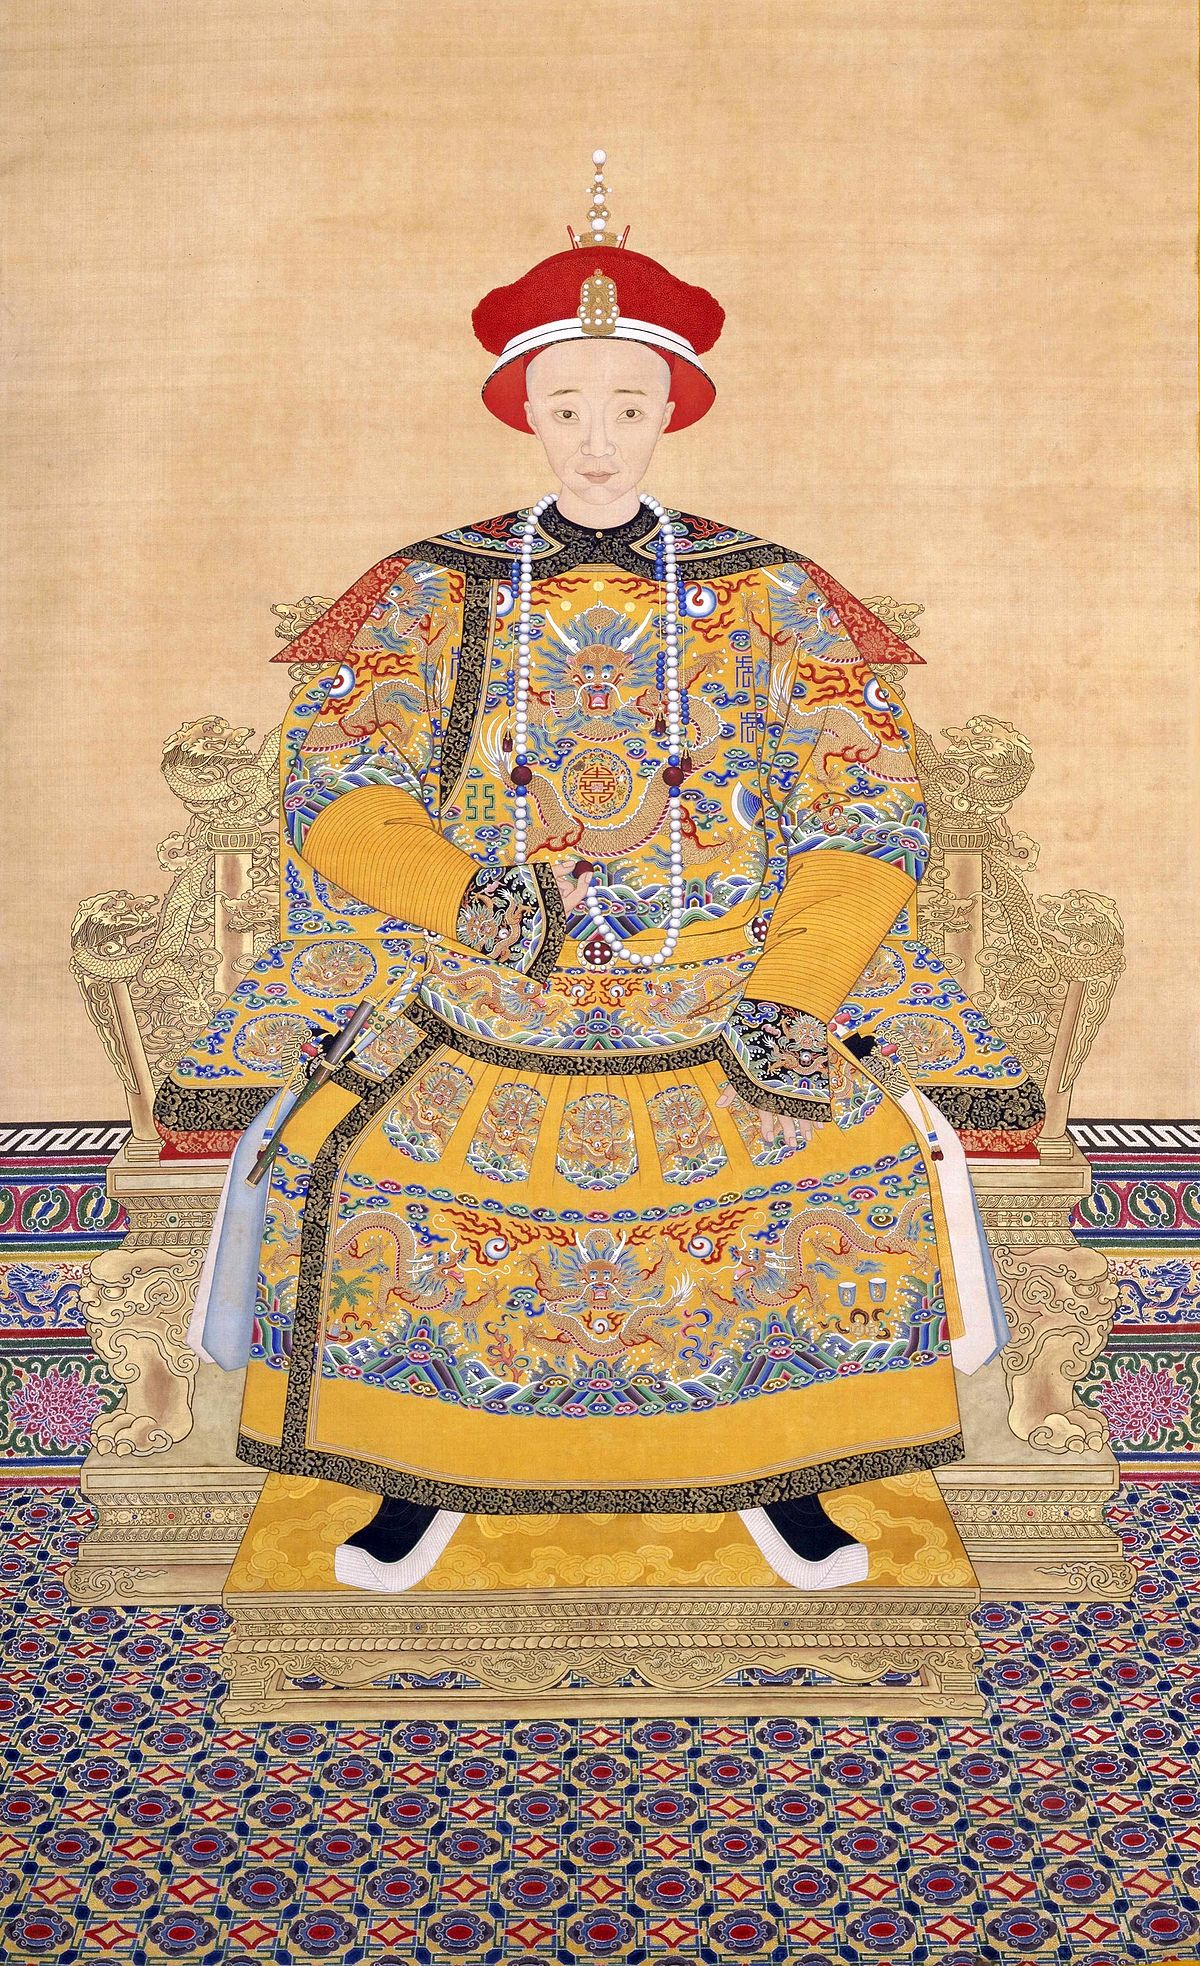 The Emperor Seven Tarot Cards From Different Packs Other: Xianfeng Emperor